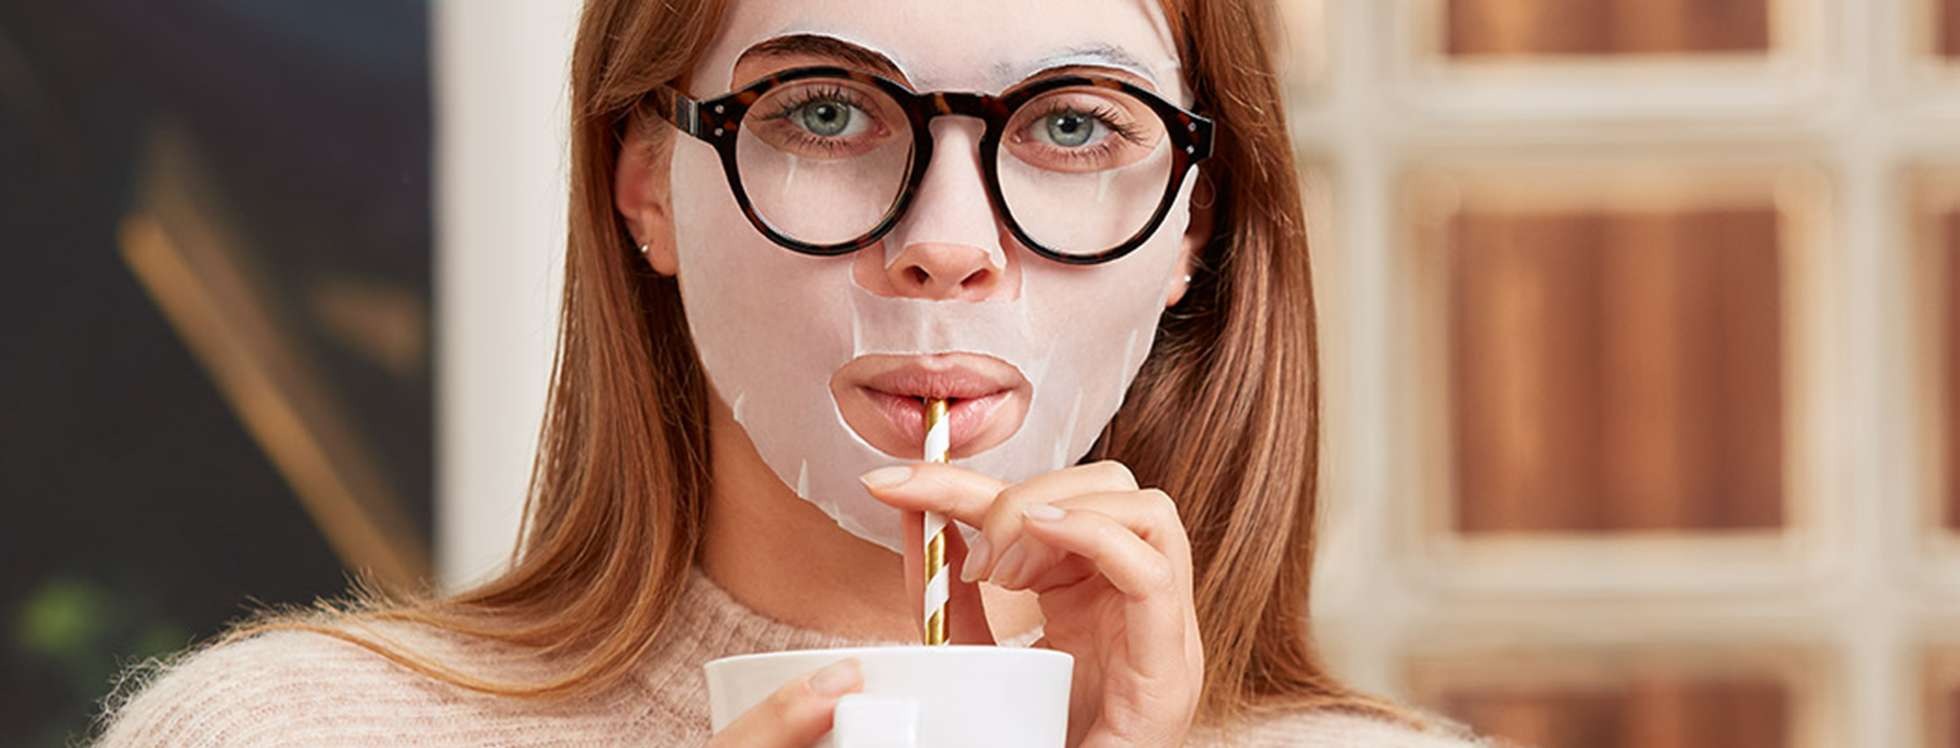 Woman wearing a sheet mask and spectacles